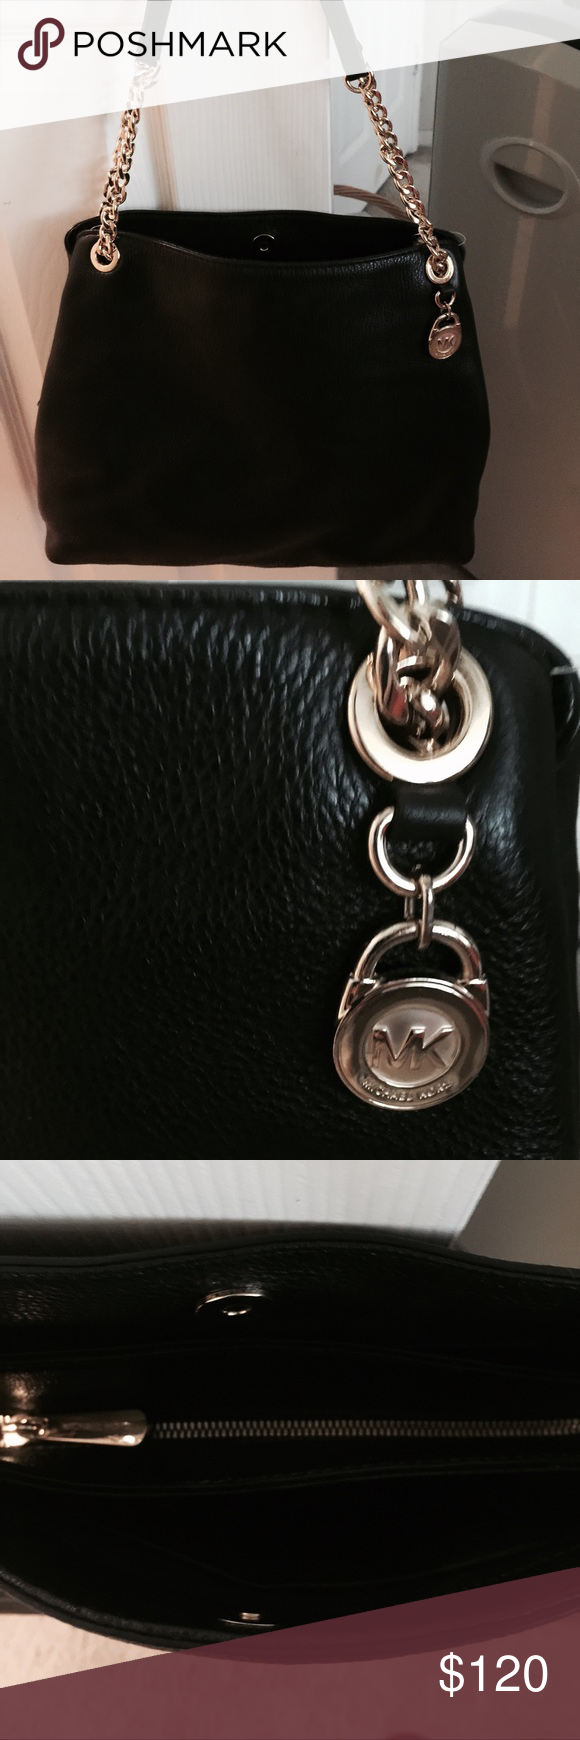 Michael Kors authentic purse brand new. Brand new black n gold purse. Very nice all leather. Michael Kors Bags Shoulder Bags